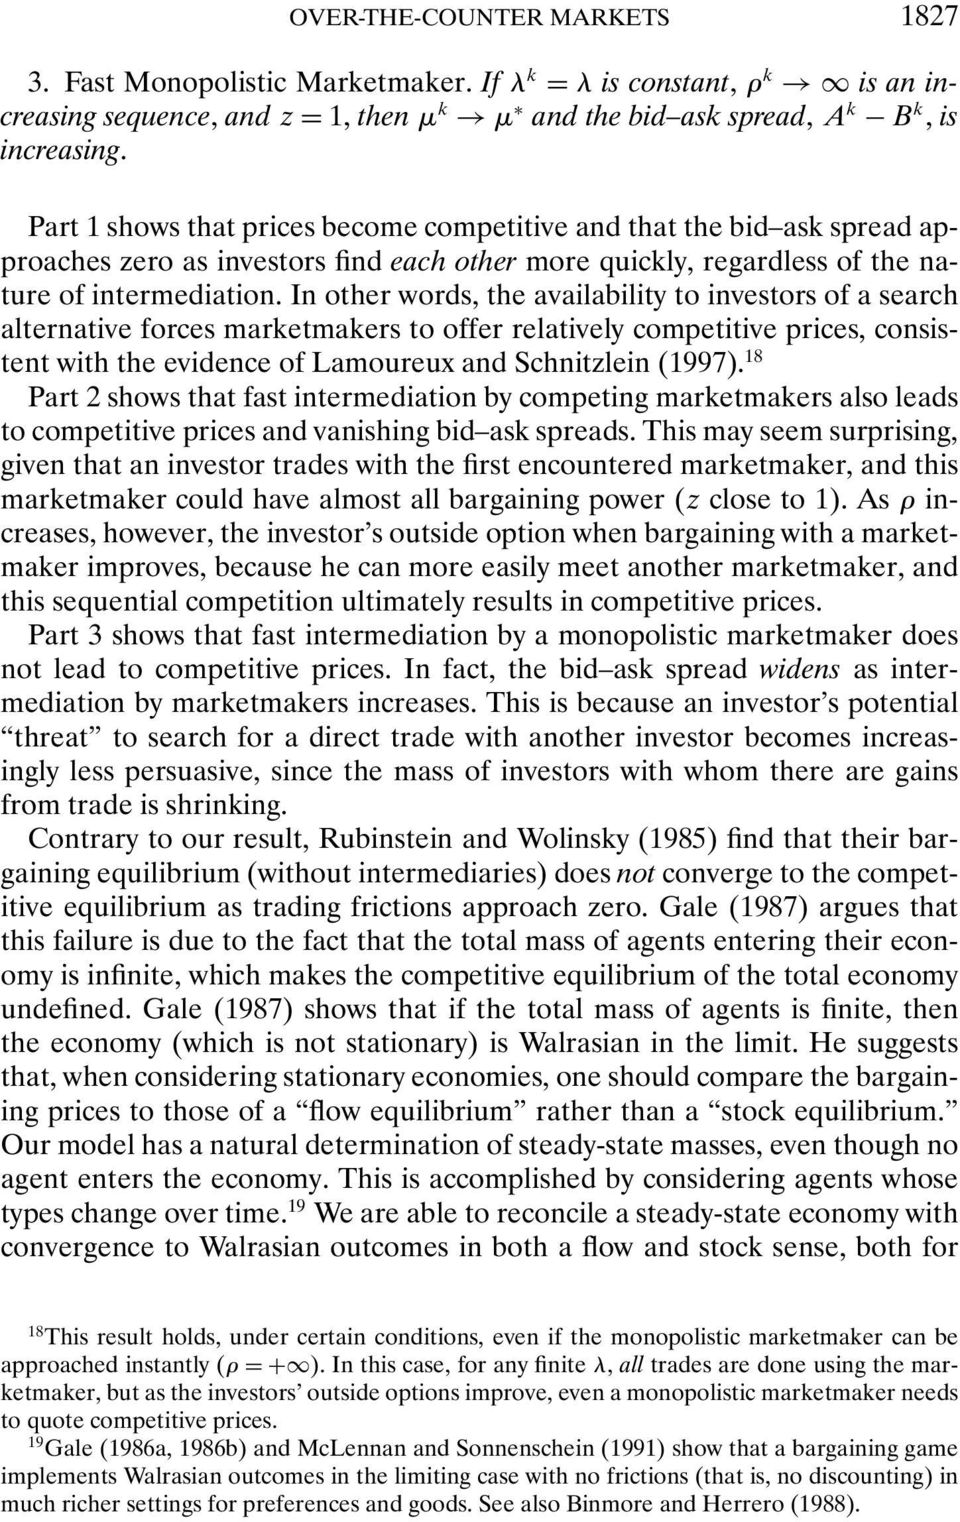 In other words, the availability to investors of a search alternative forces marketmakers to offer relatively competitive prices, consistent with the evidence of Lamoureux and Schnitzlein (1997).